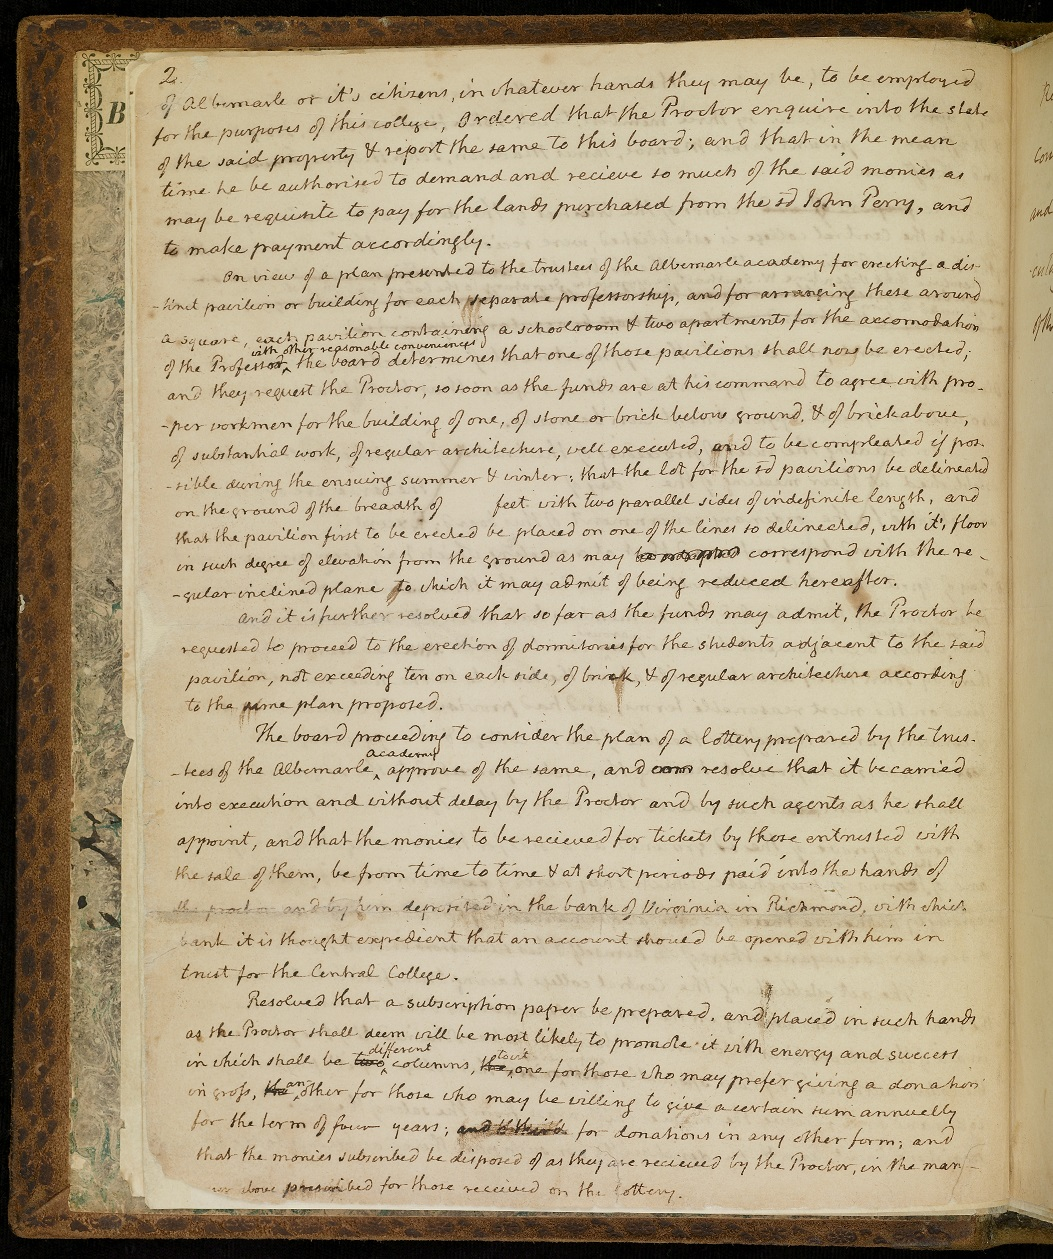 Page two of the Minute Book of the Board of Visitors, written in Thomas Jefferson's hand, 1819.